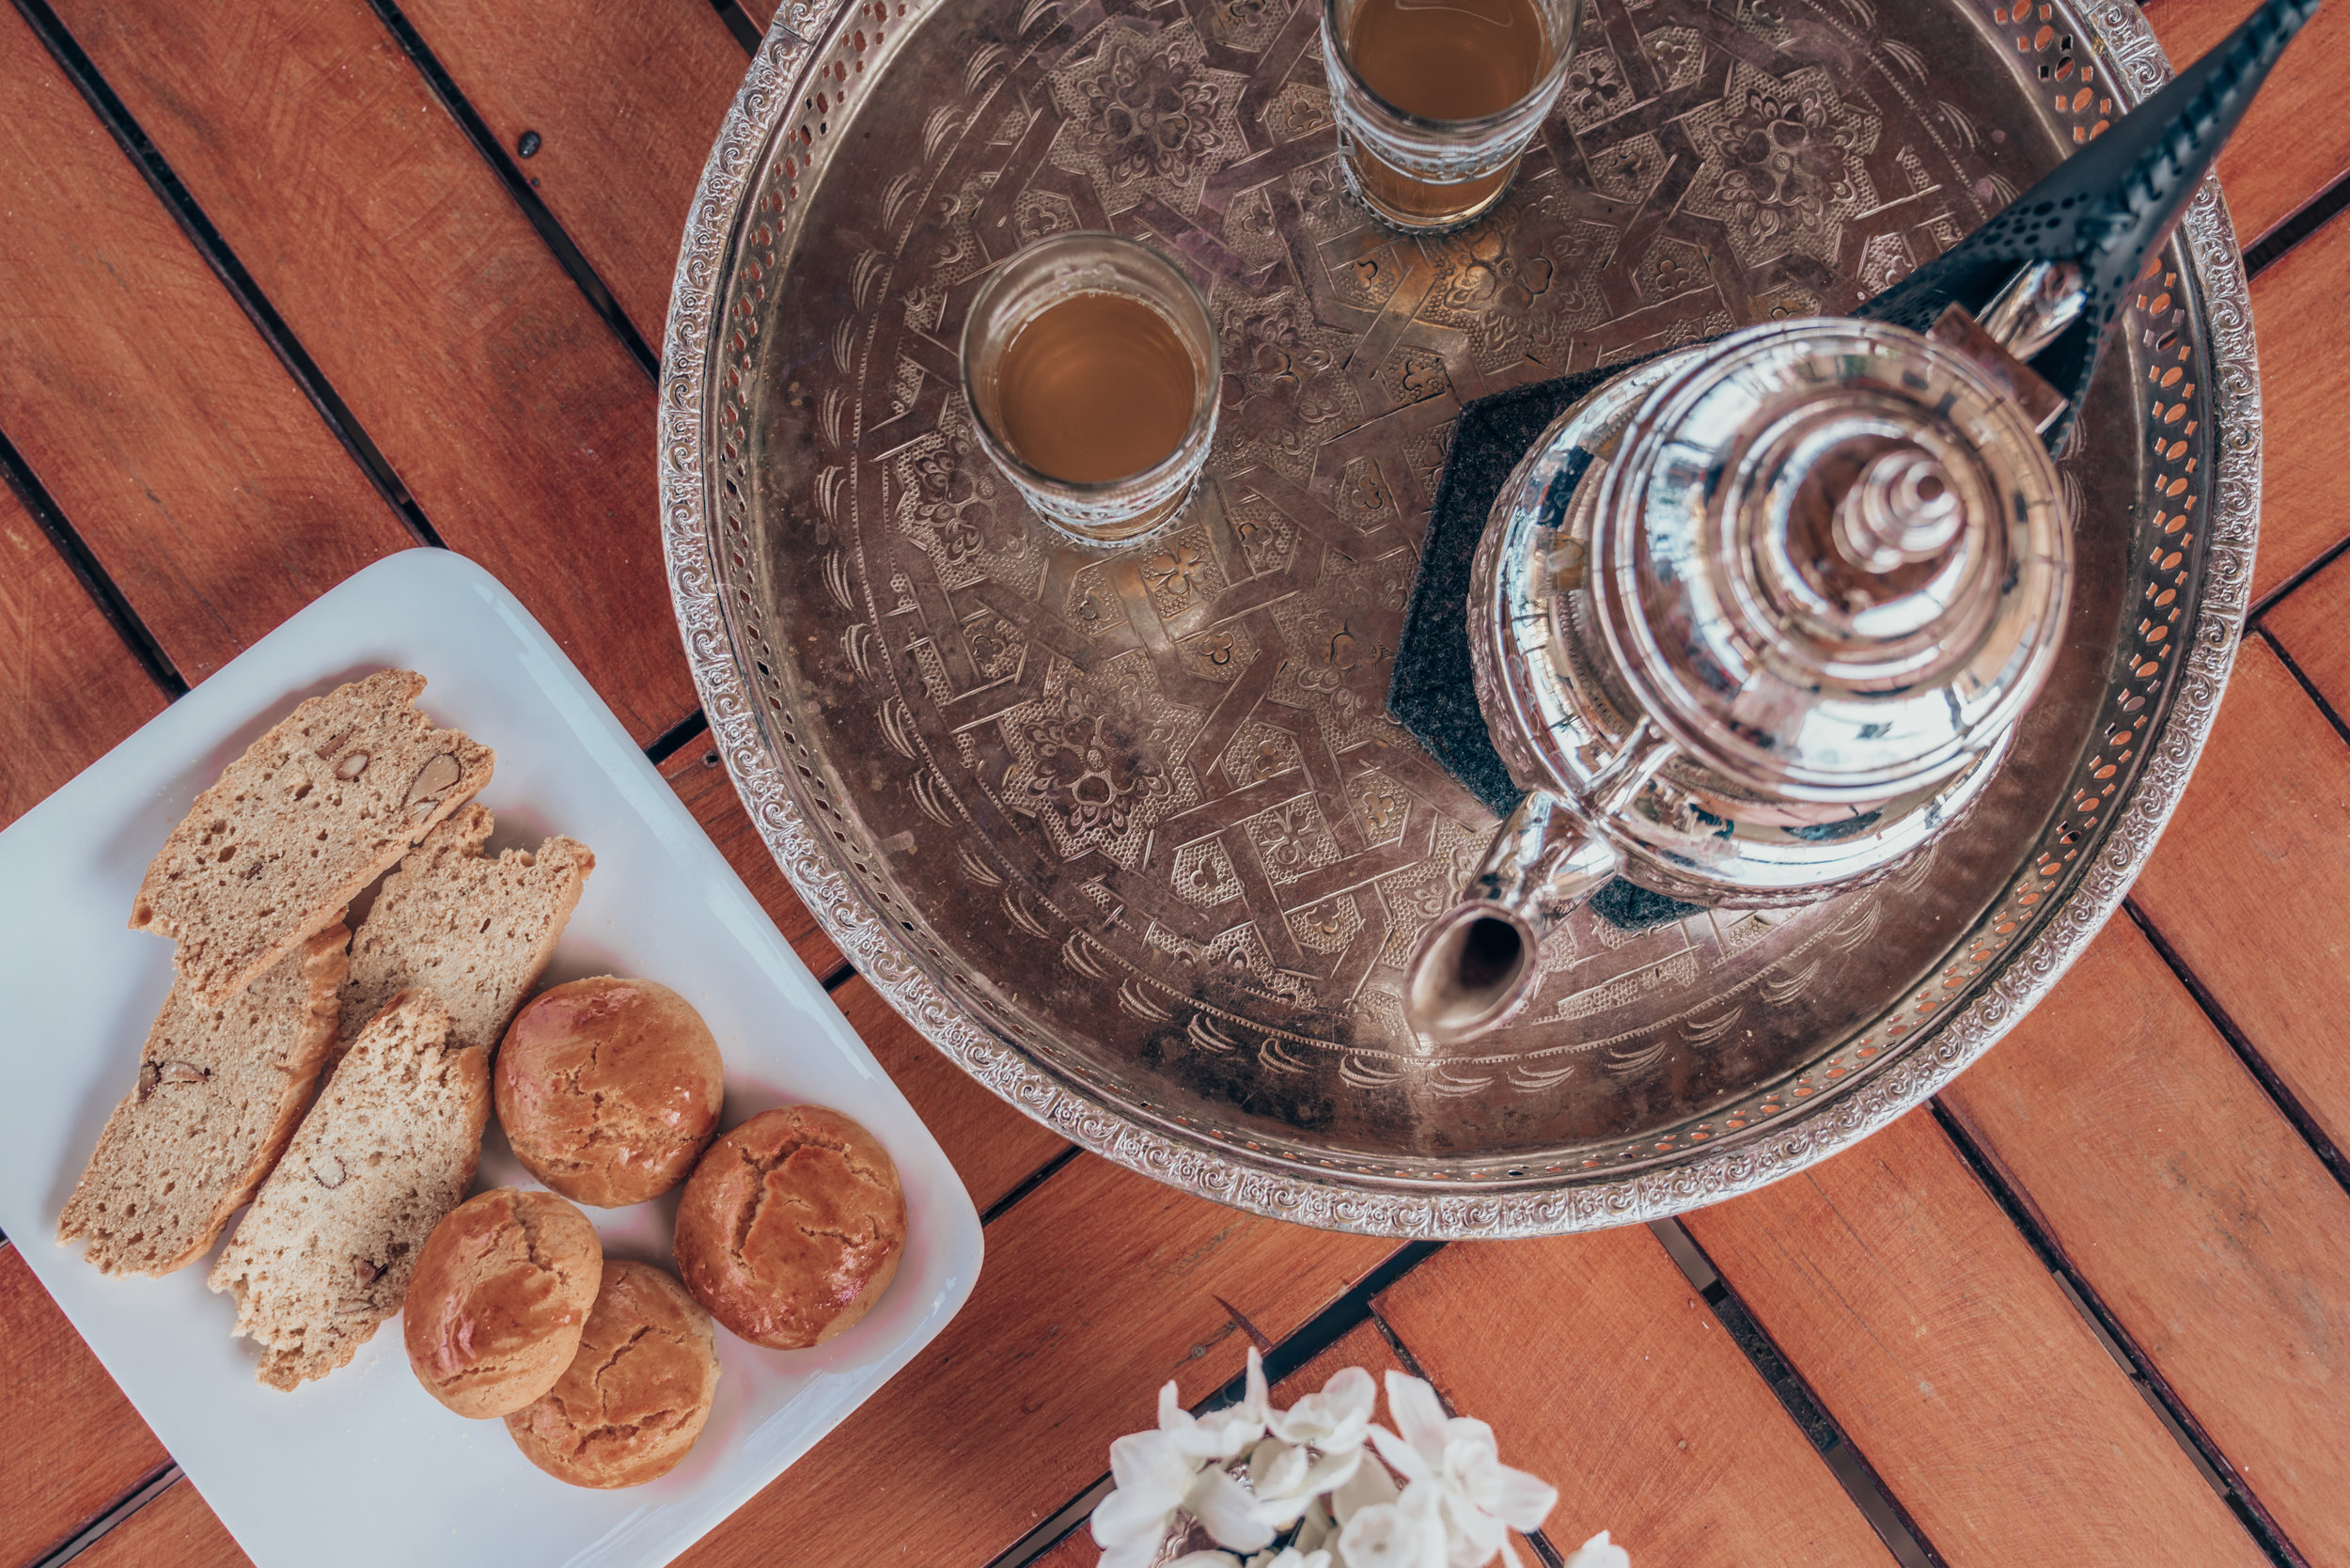 Riad Anata Moroccan Mint Tea and Cookies